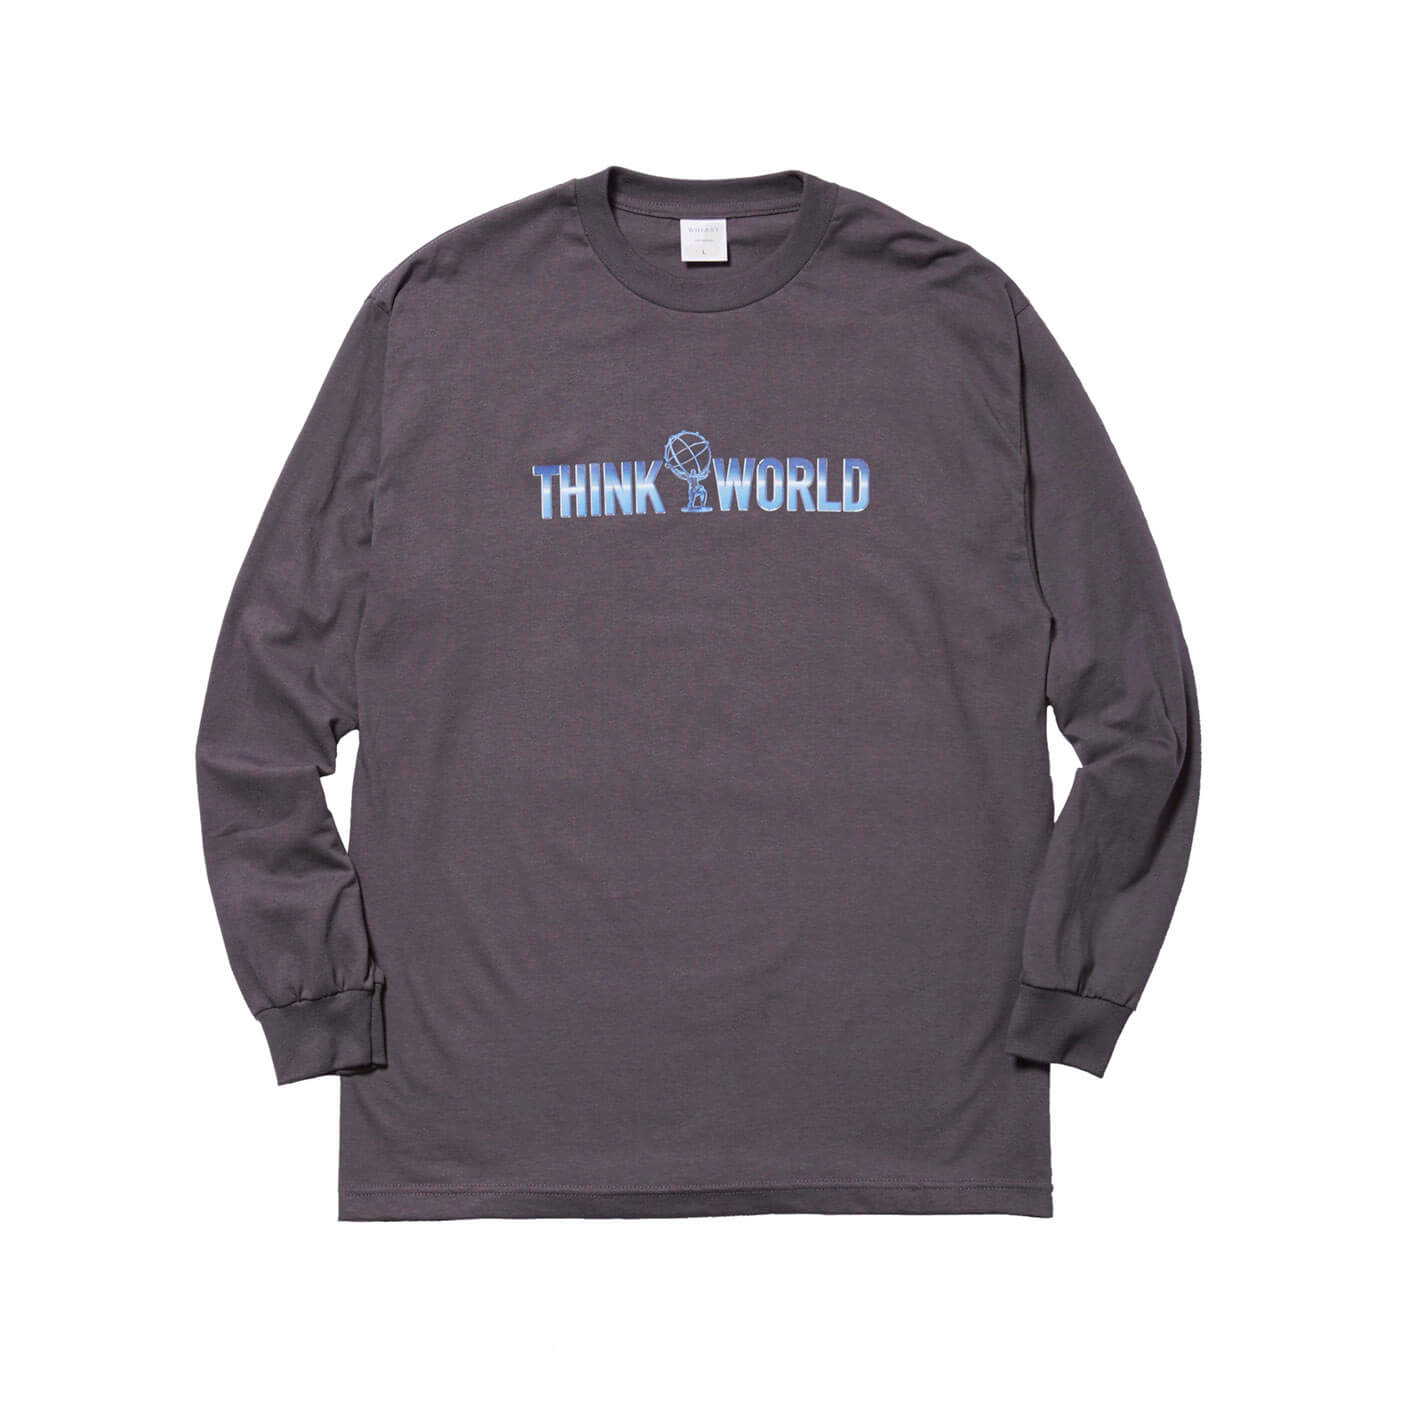 THINK WORLD L/S TEE